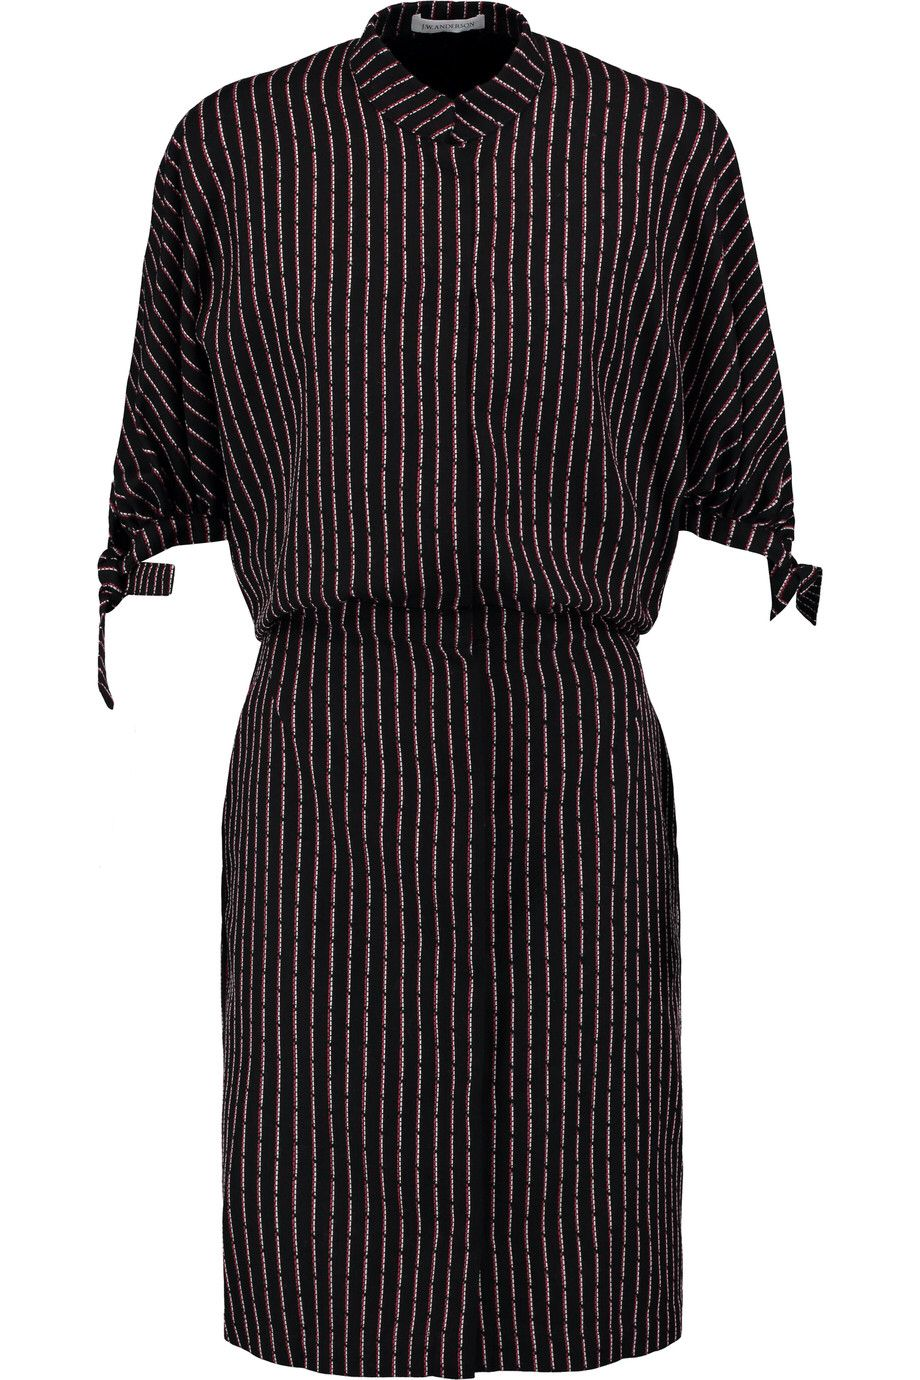 J.W.ANDERSON Embroidered wool-twill dress  €527.50 http://www.theoutnet.com/products/787167